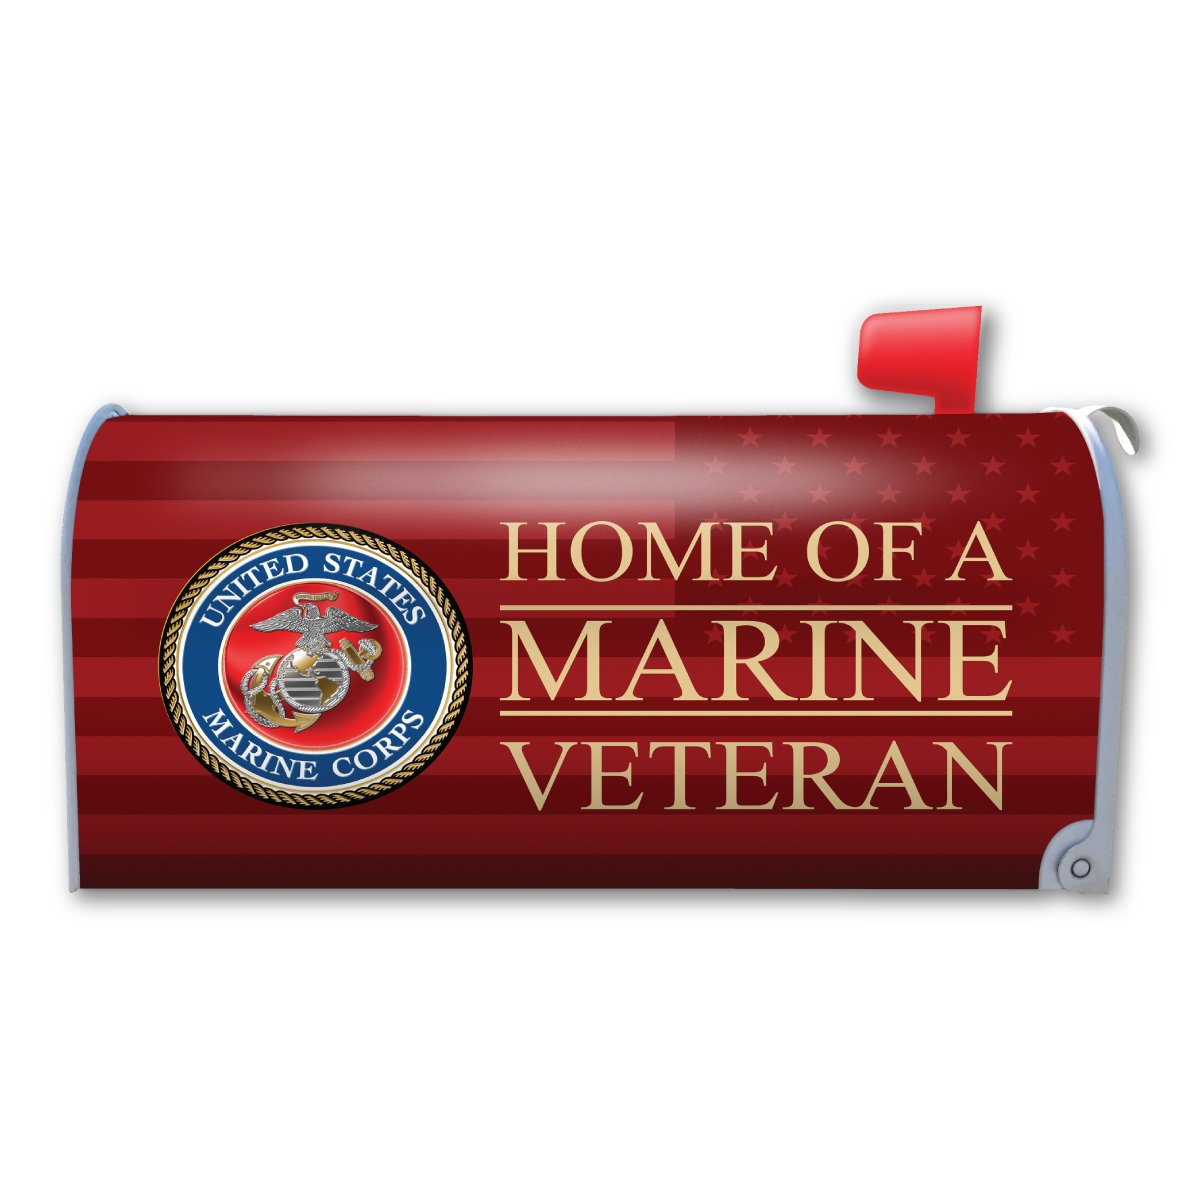 Home of a Marine Veteran Mailbox Cover Magnet (Magnet)